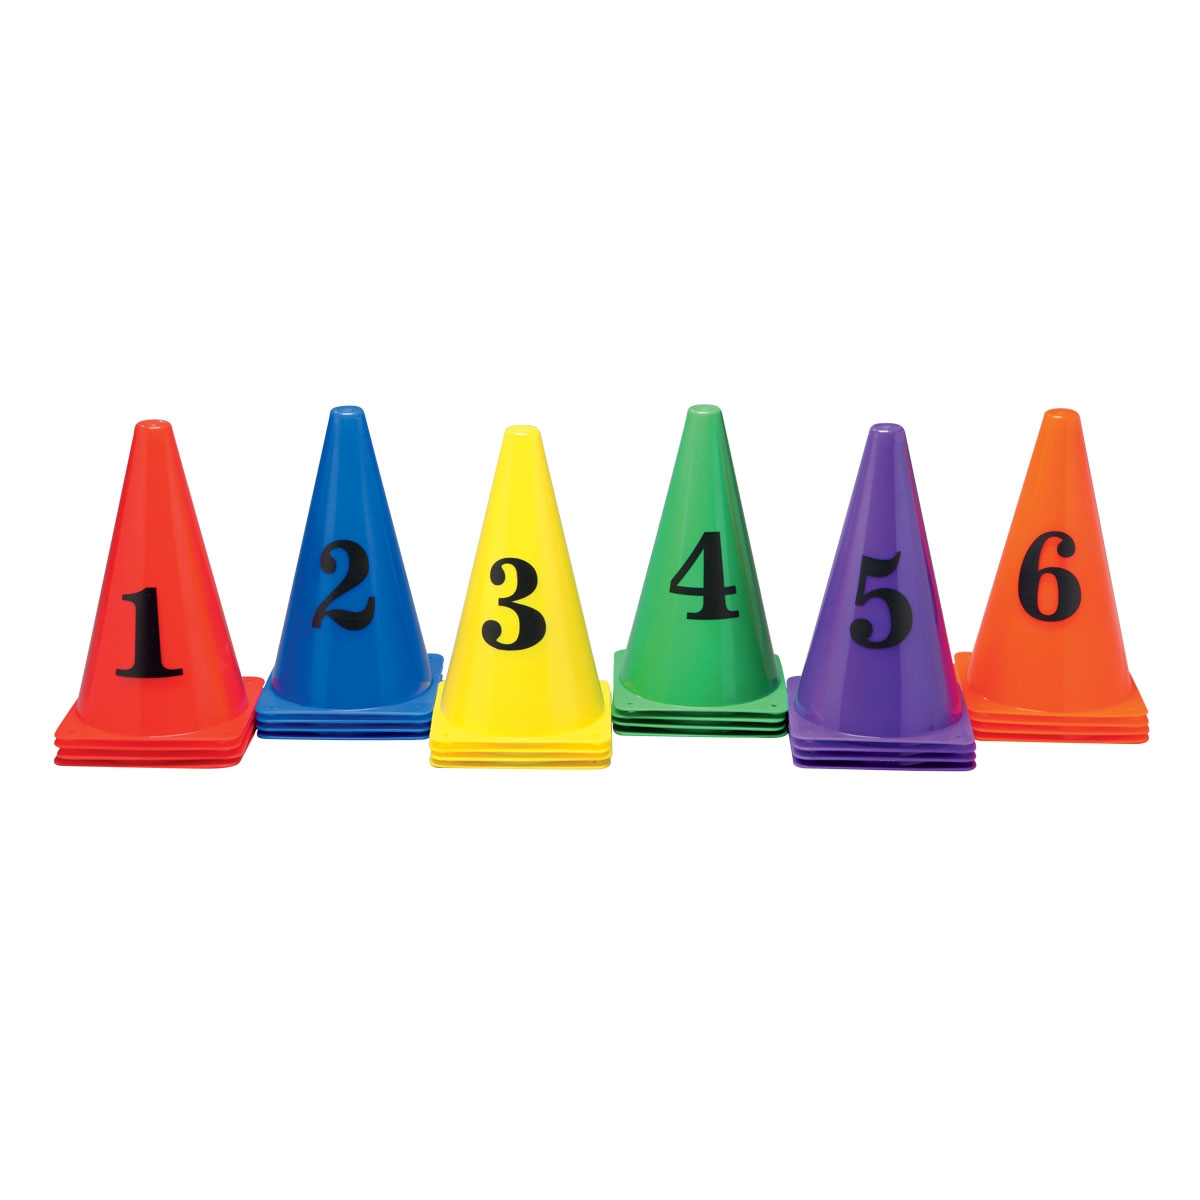 colorful cones 1-6 with numbers on the side